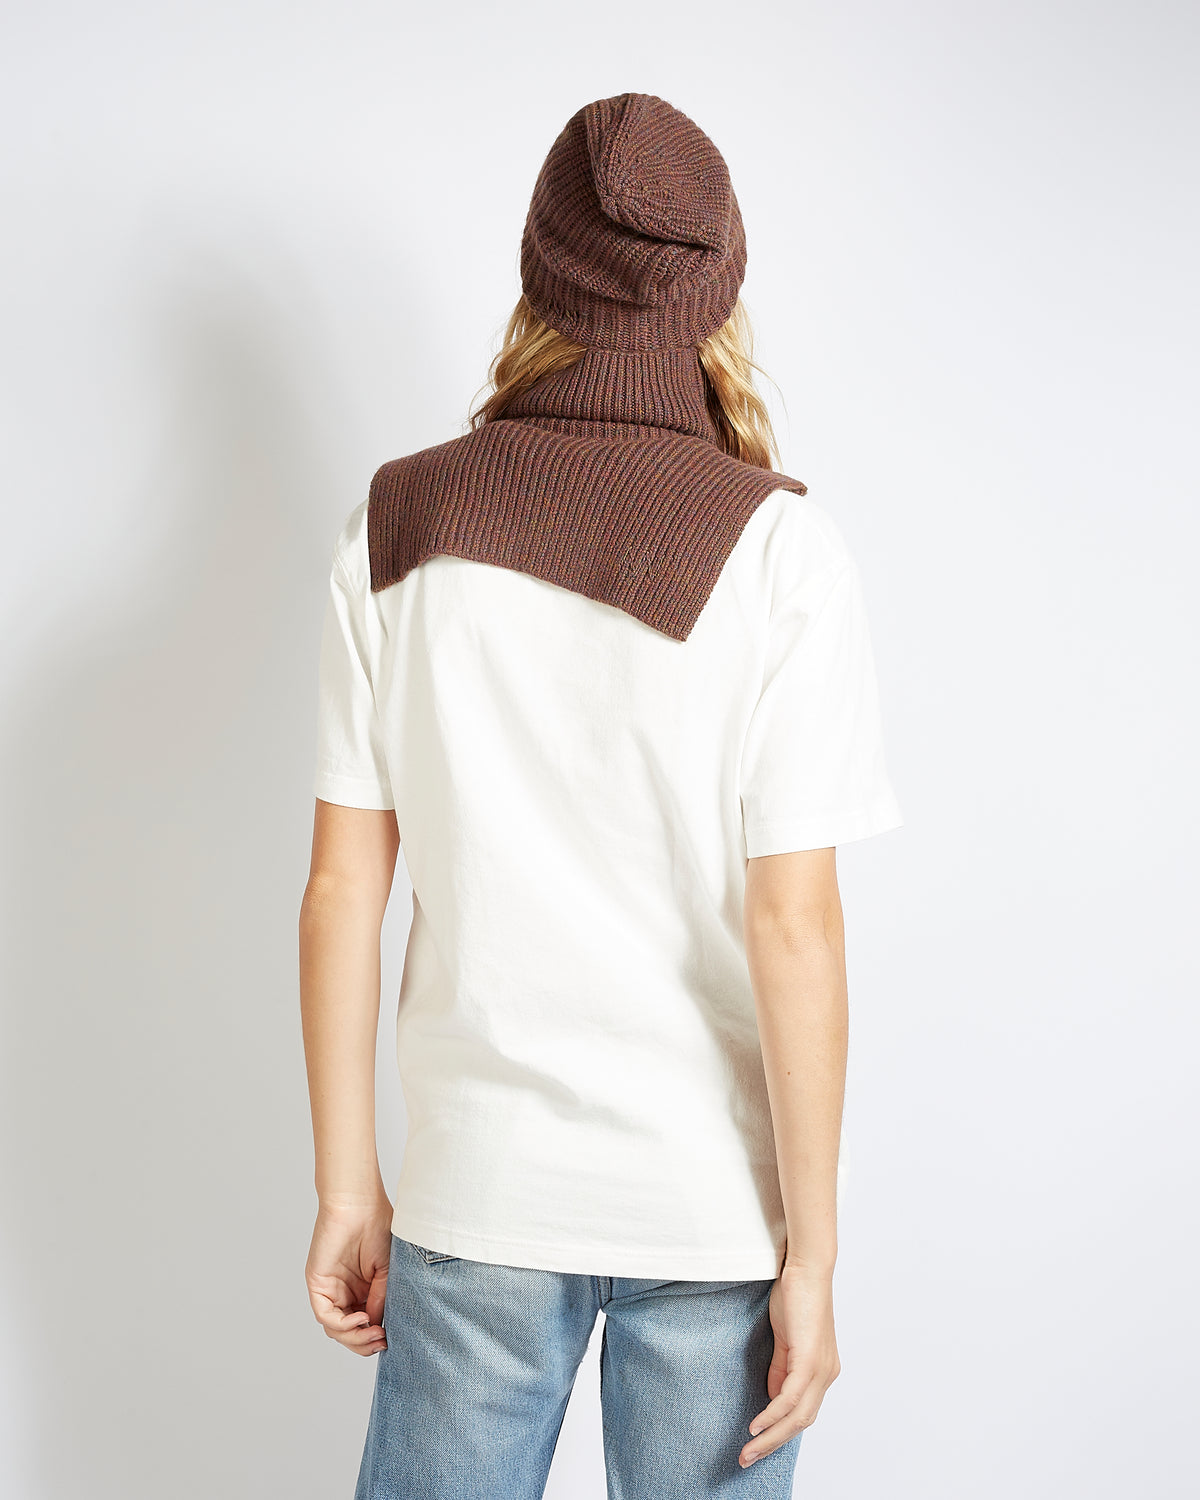 bonnet cachemire brown